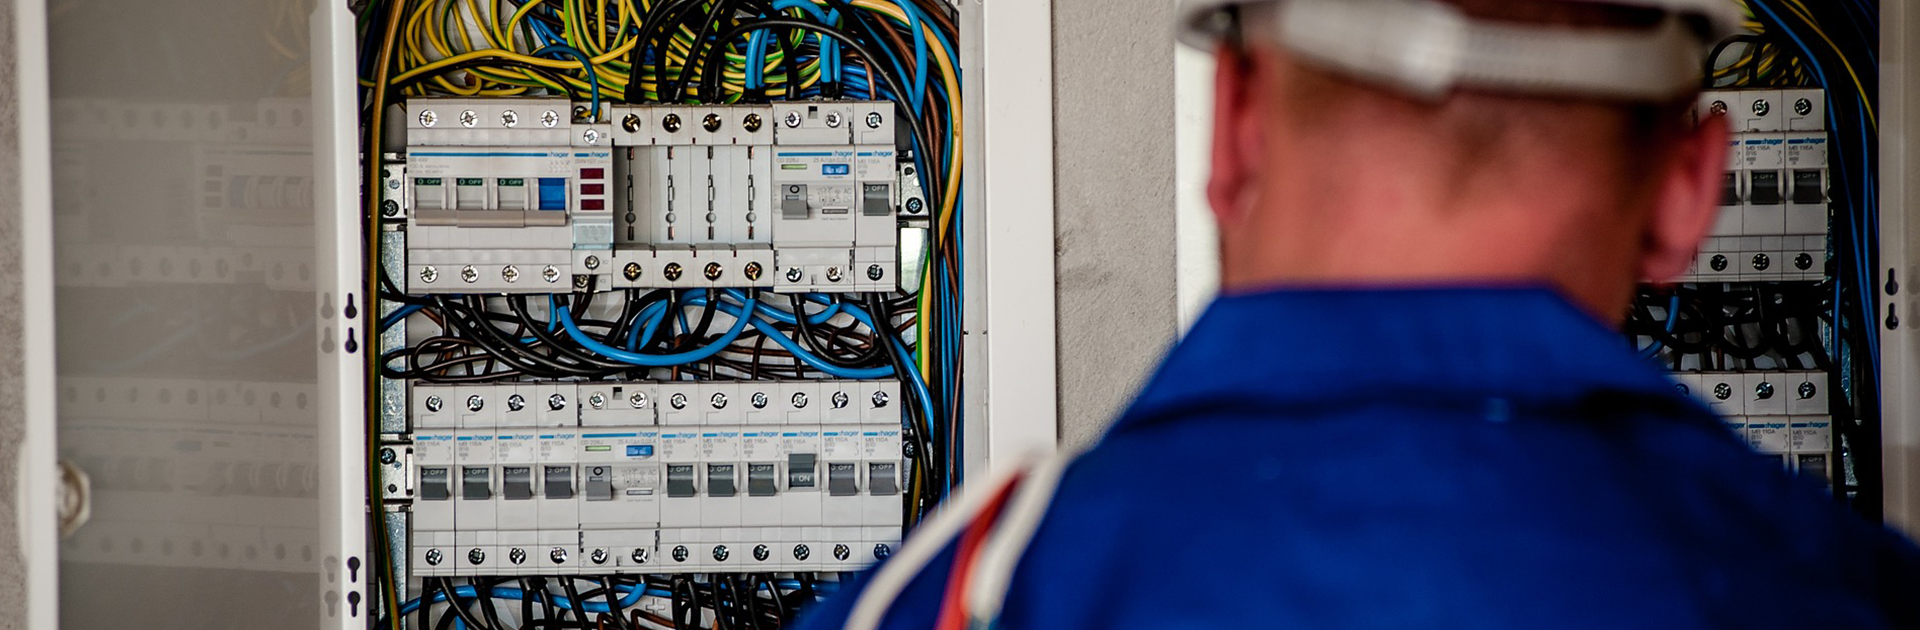 electrician wearing a blue shirt working on an electrical panel